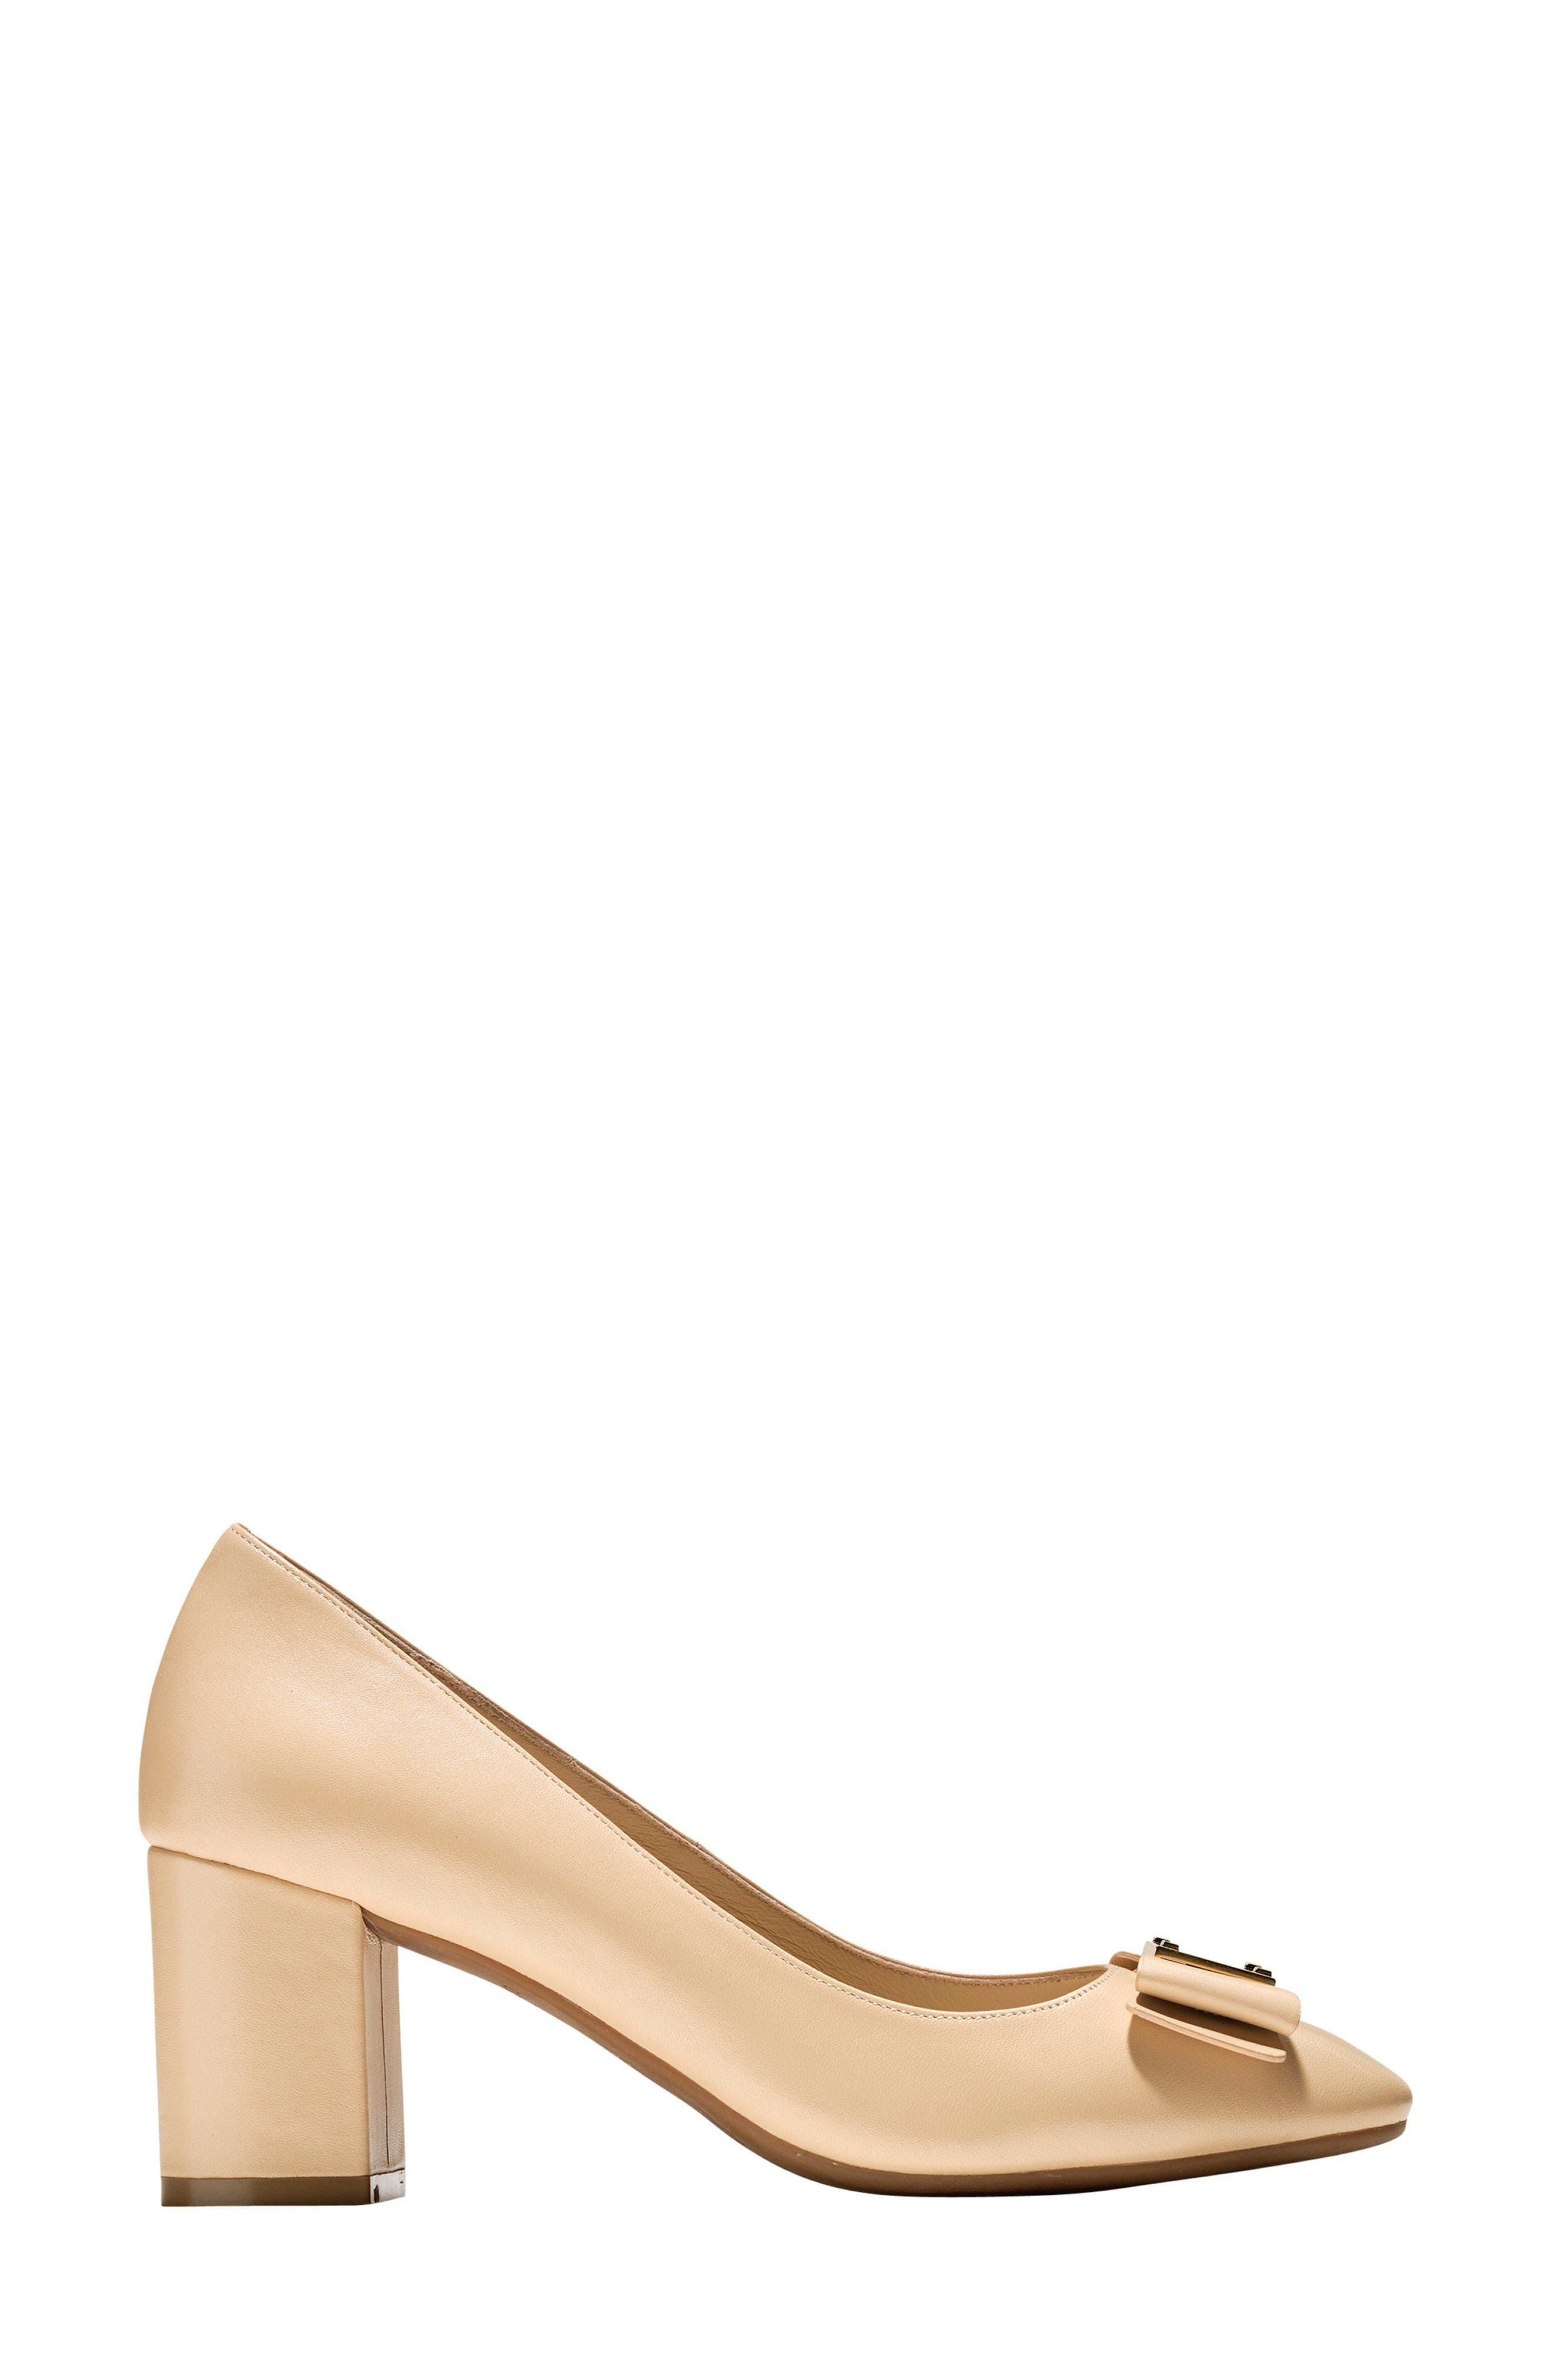 Tali Bow Pump,                             Alternate thumbnail 3, color,                             NUDE LEATHER